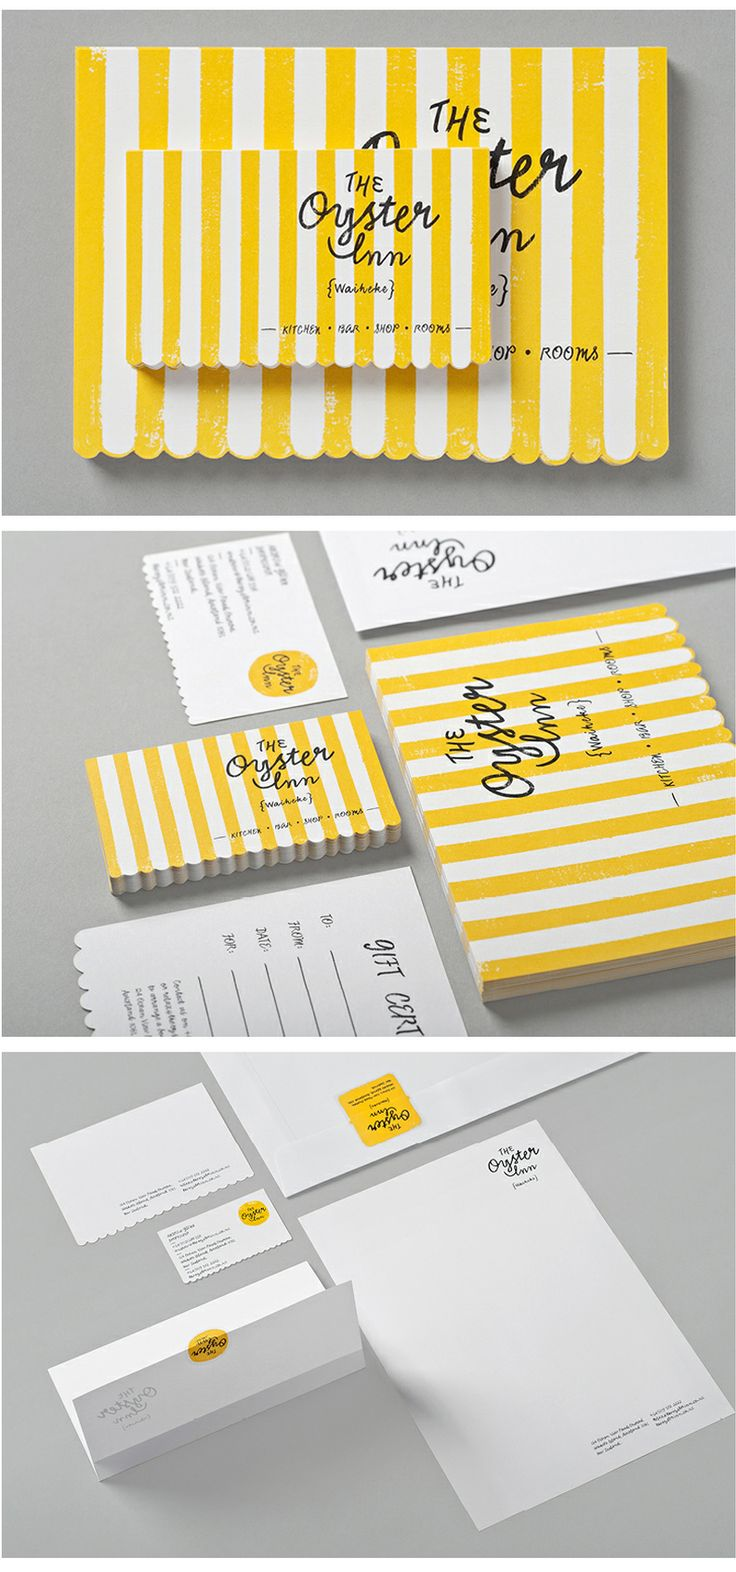 I like how the focus in branding is on the background rather than the logo. I can see myself remembering this business card because the it does not follow conventional white background style